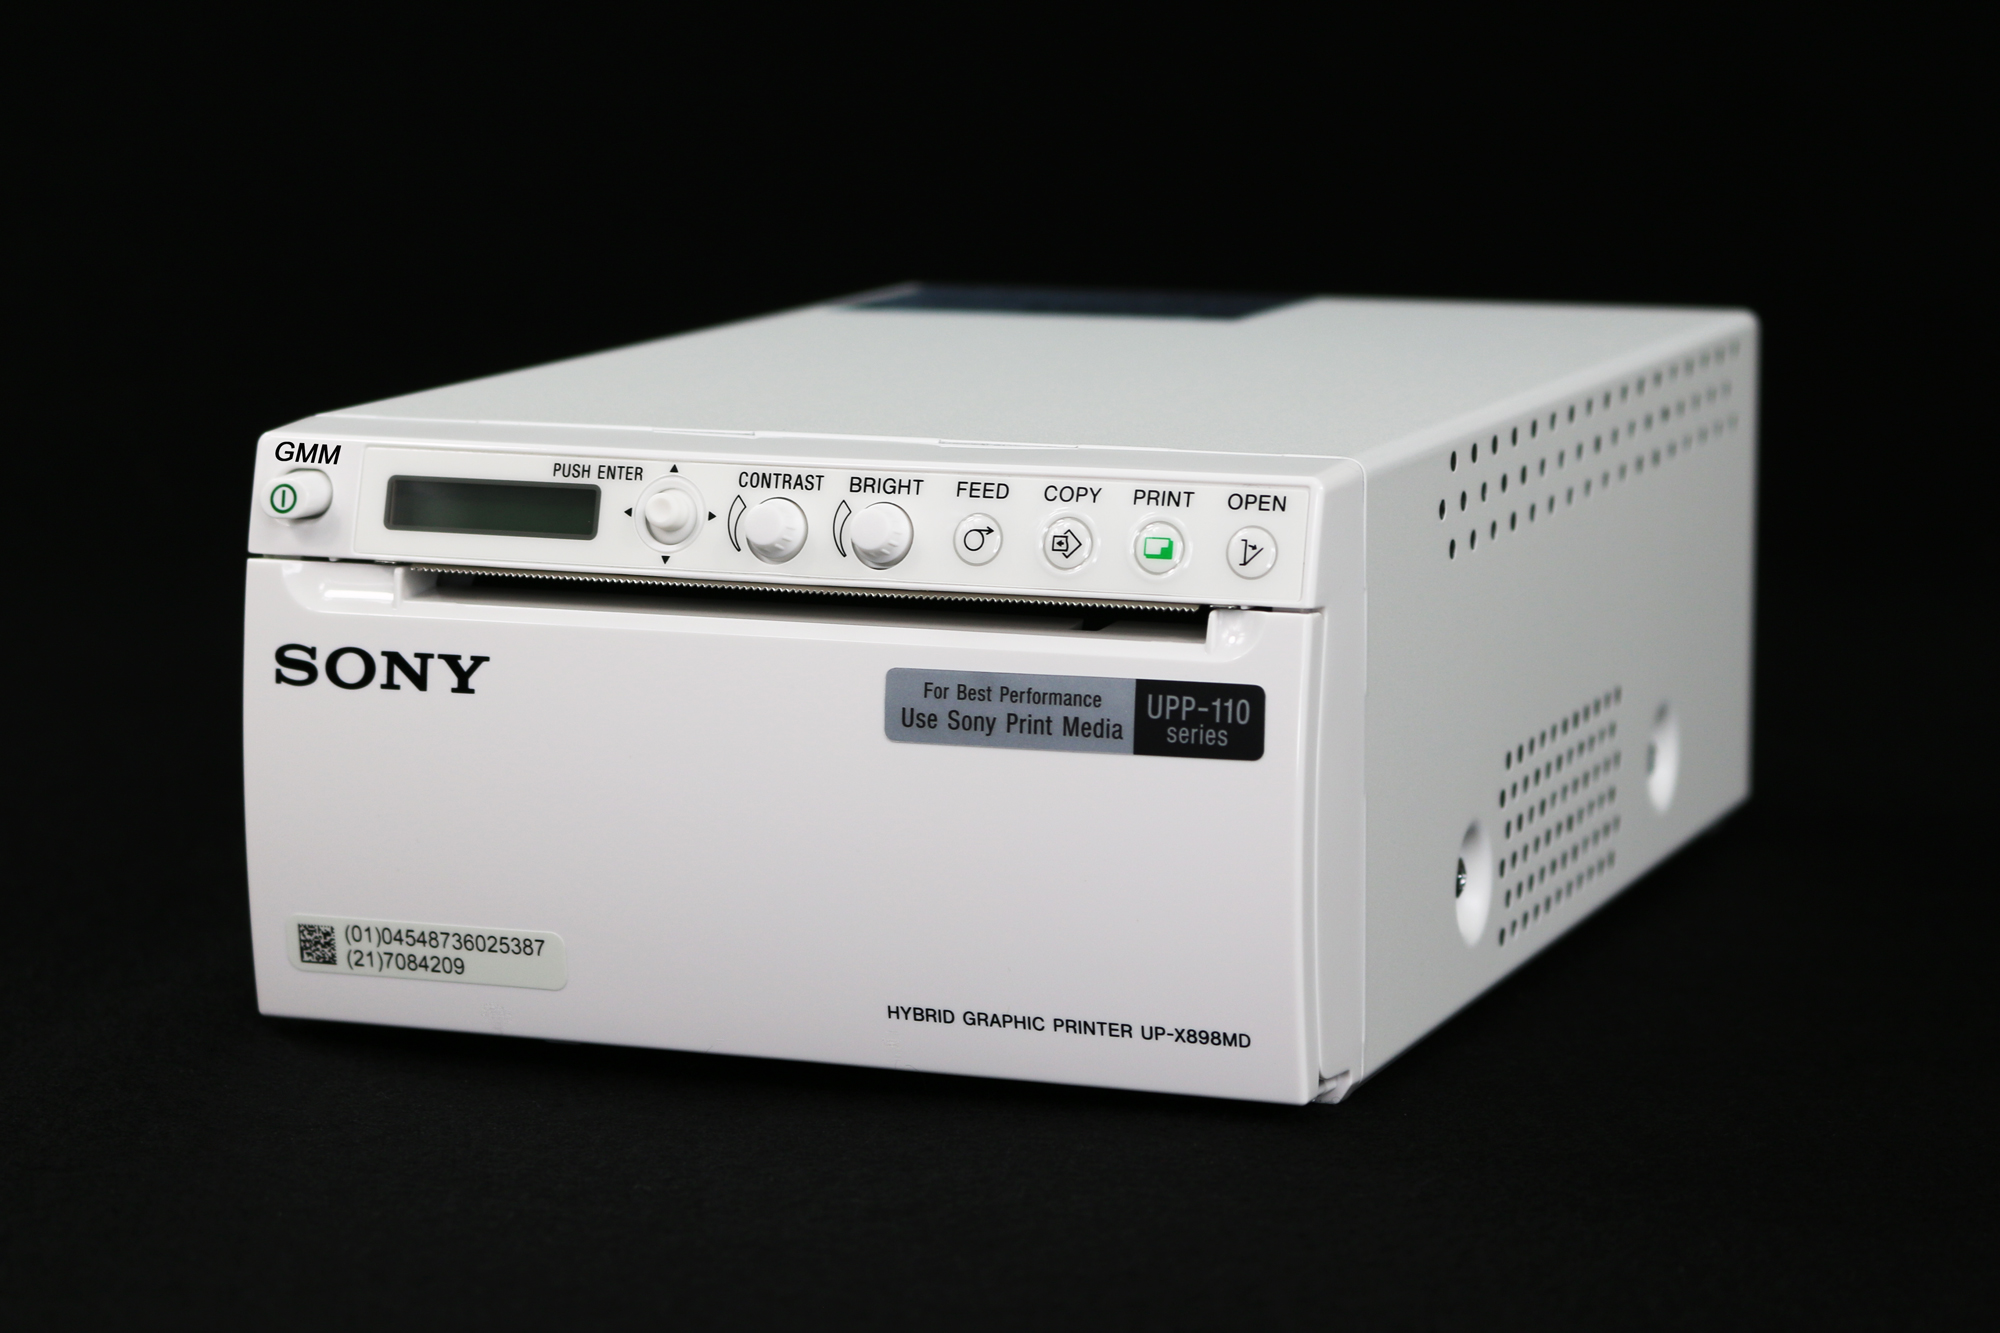 SONY Hybrid Graphic Printer UP-X898MD - Austausch